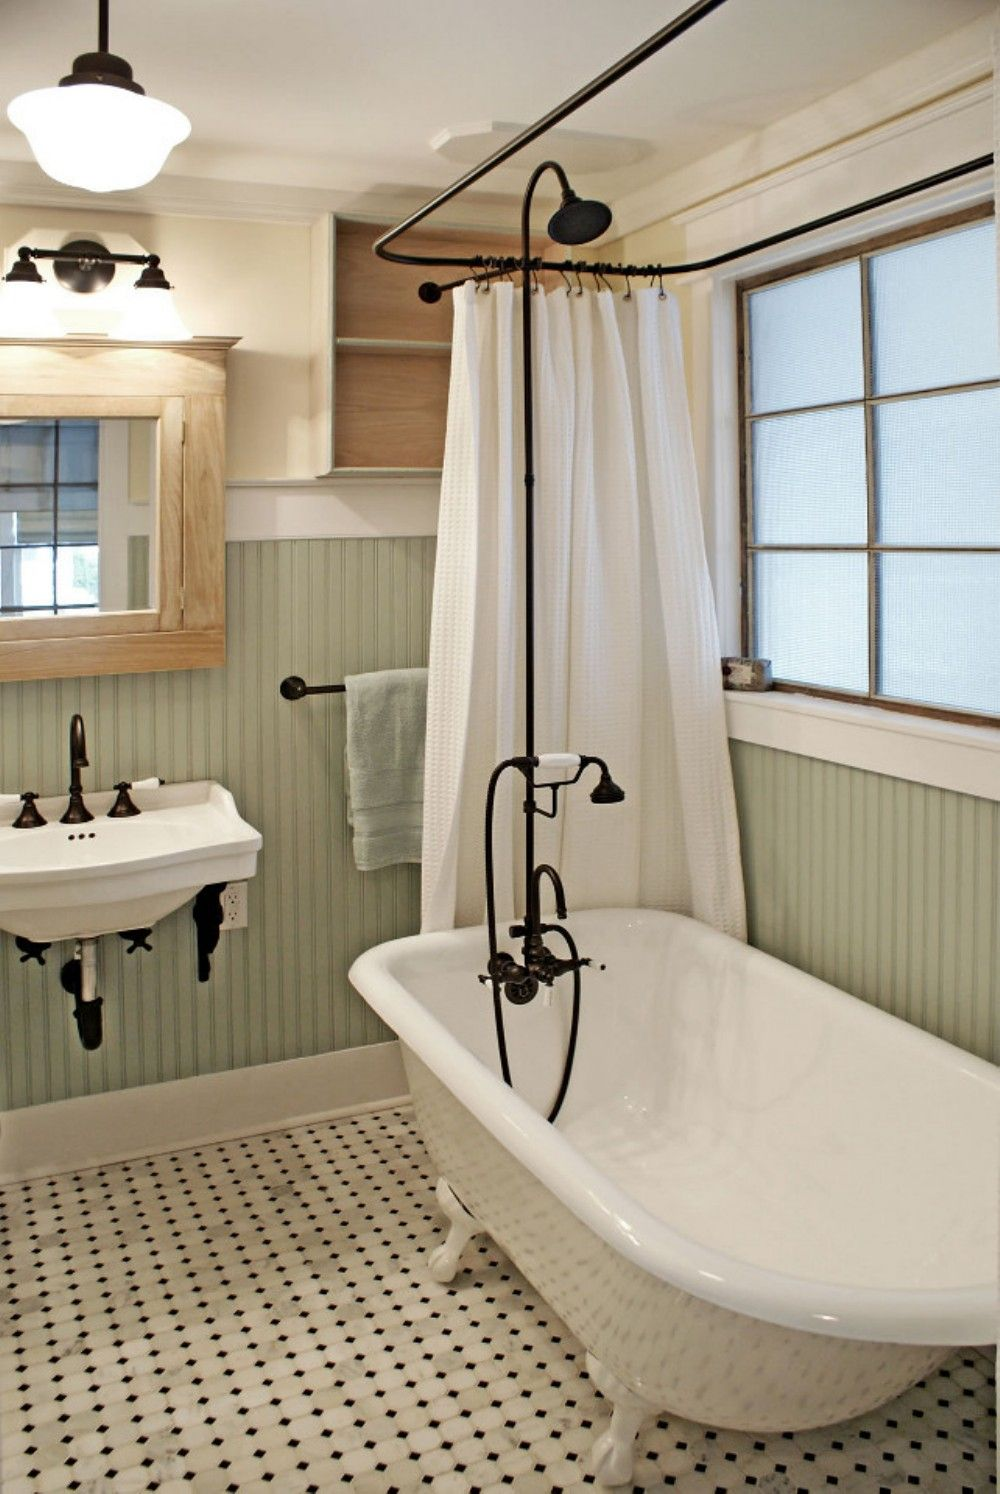 awesome 23 Amazing Ideas About Vintage Bathroom https://homedecort ...